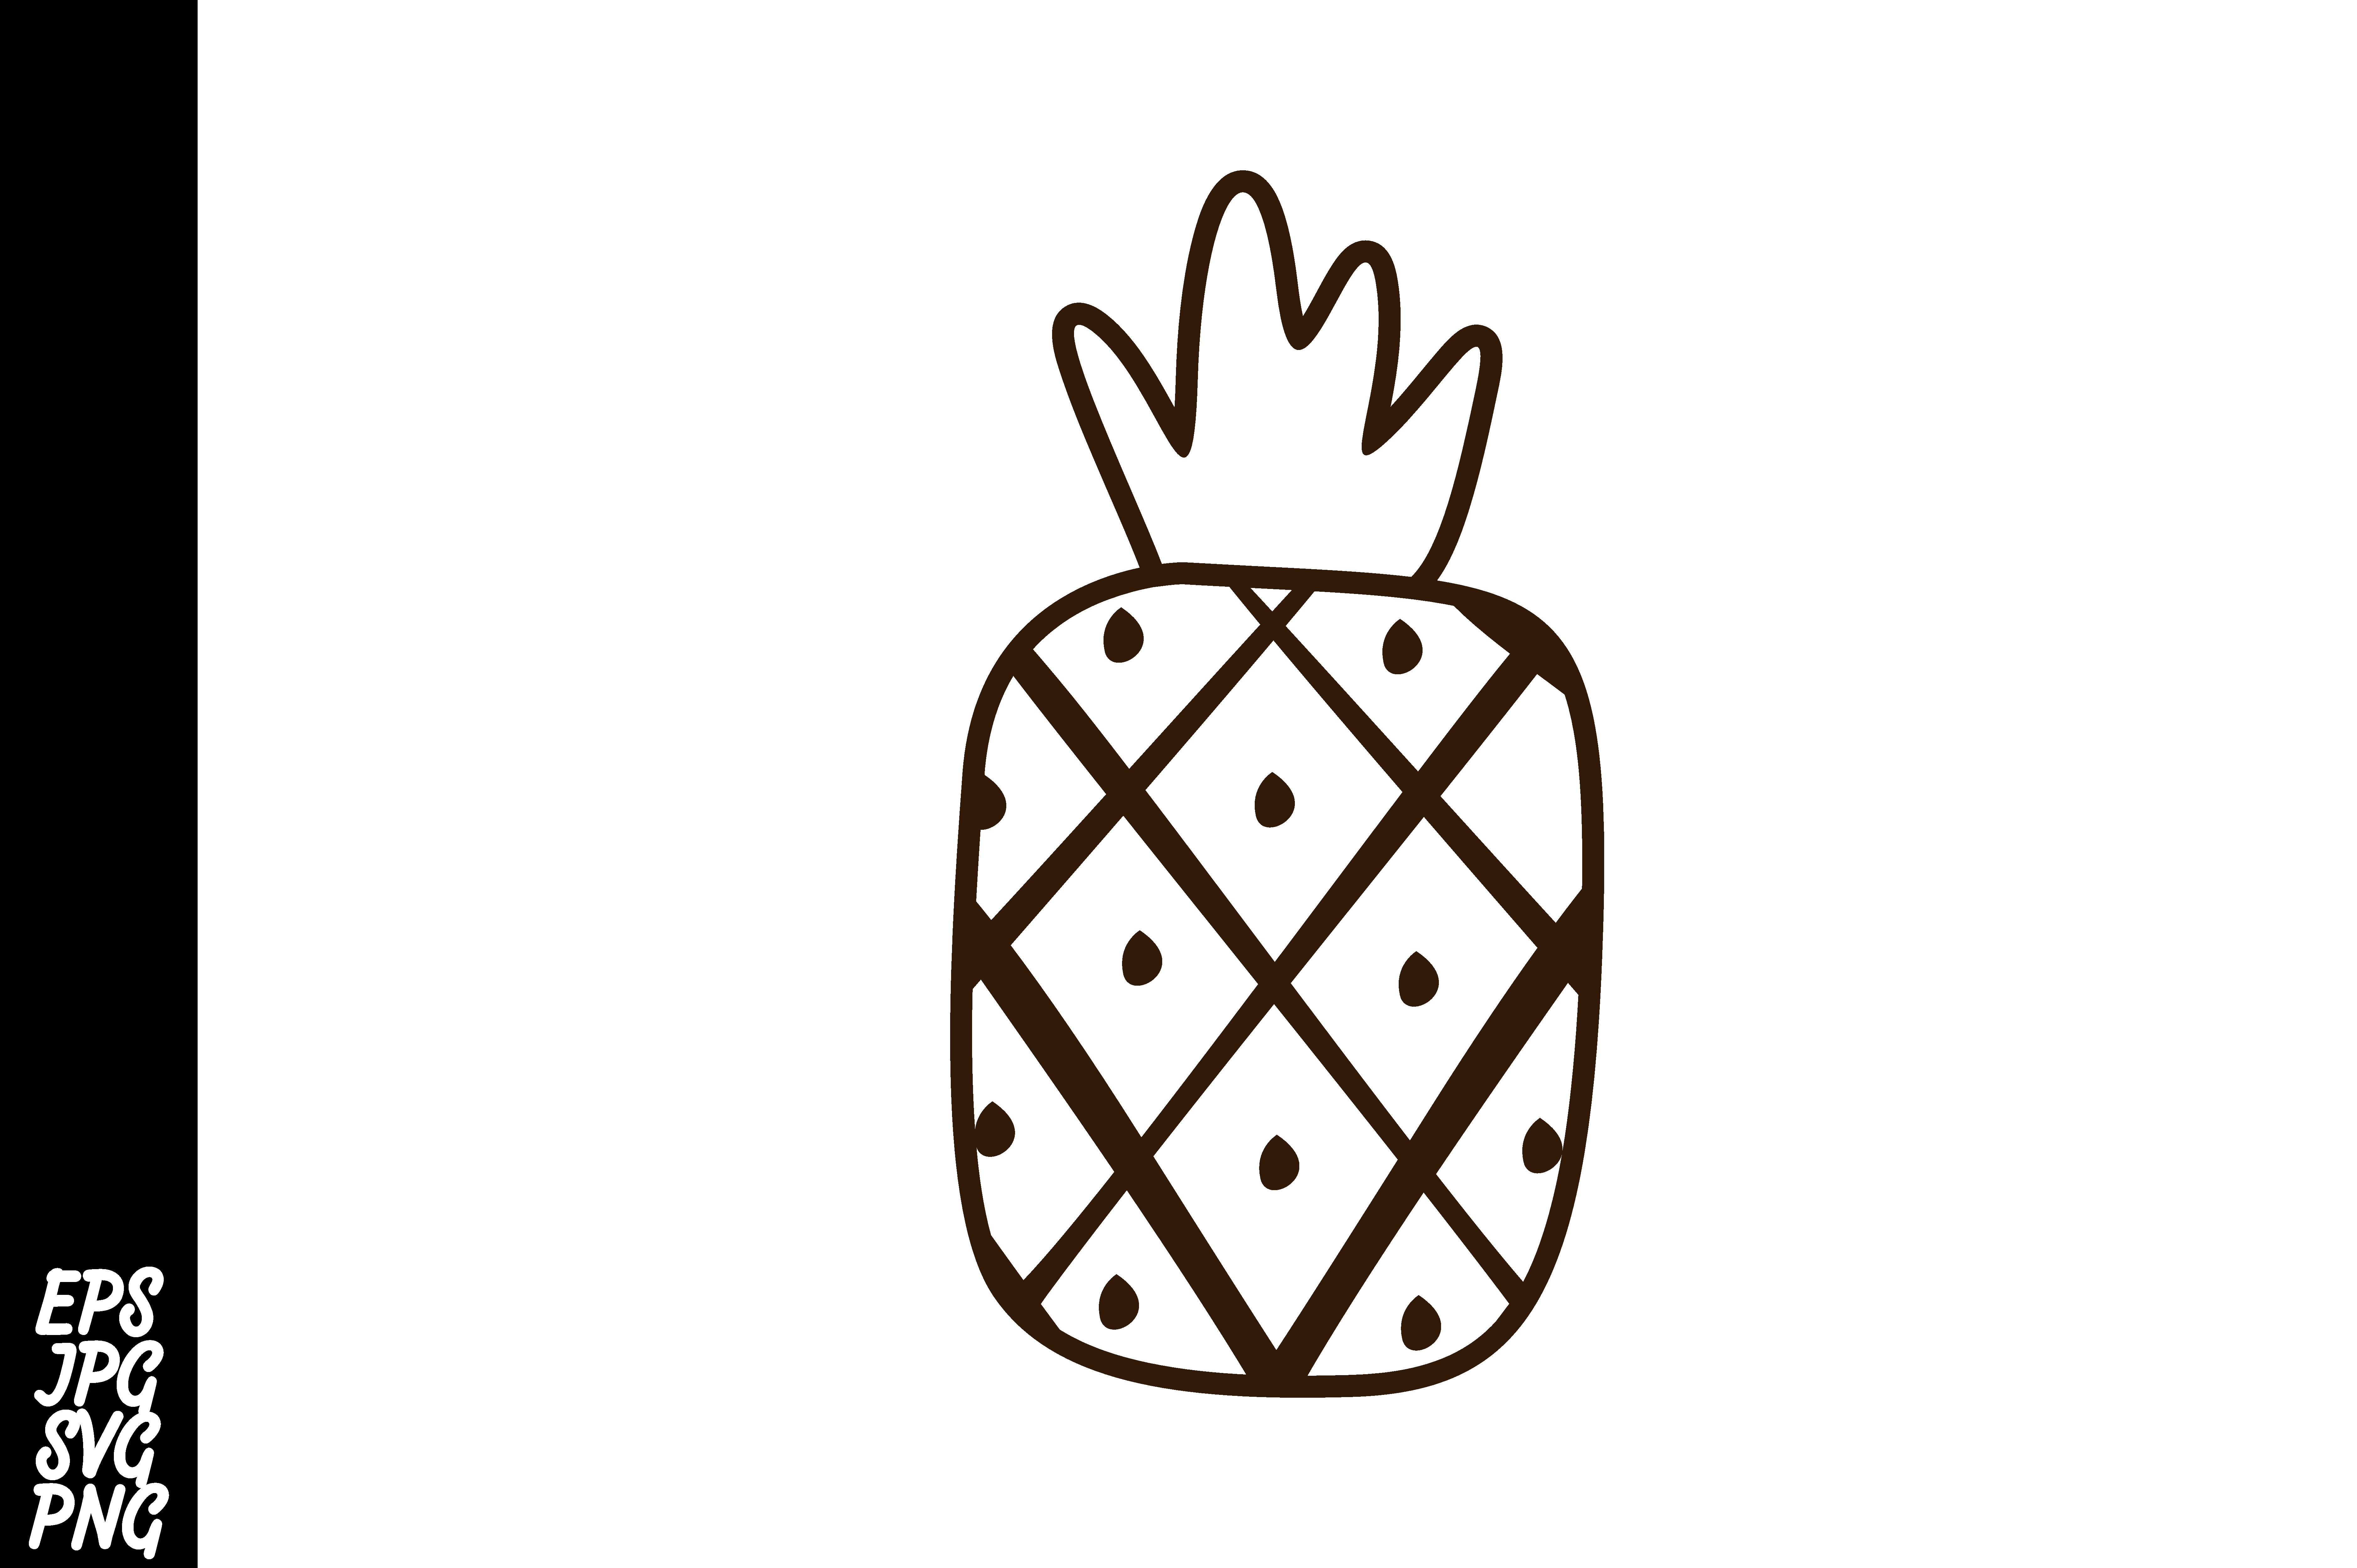 Download Free Fruit Icon Pineapple Graphic By Arief Sapta Adjie Creative for Cricut Explore, Silhouette and other cutting machines.